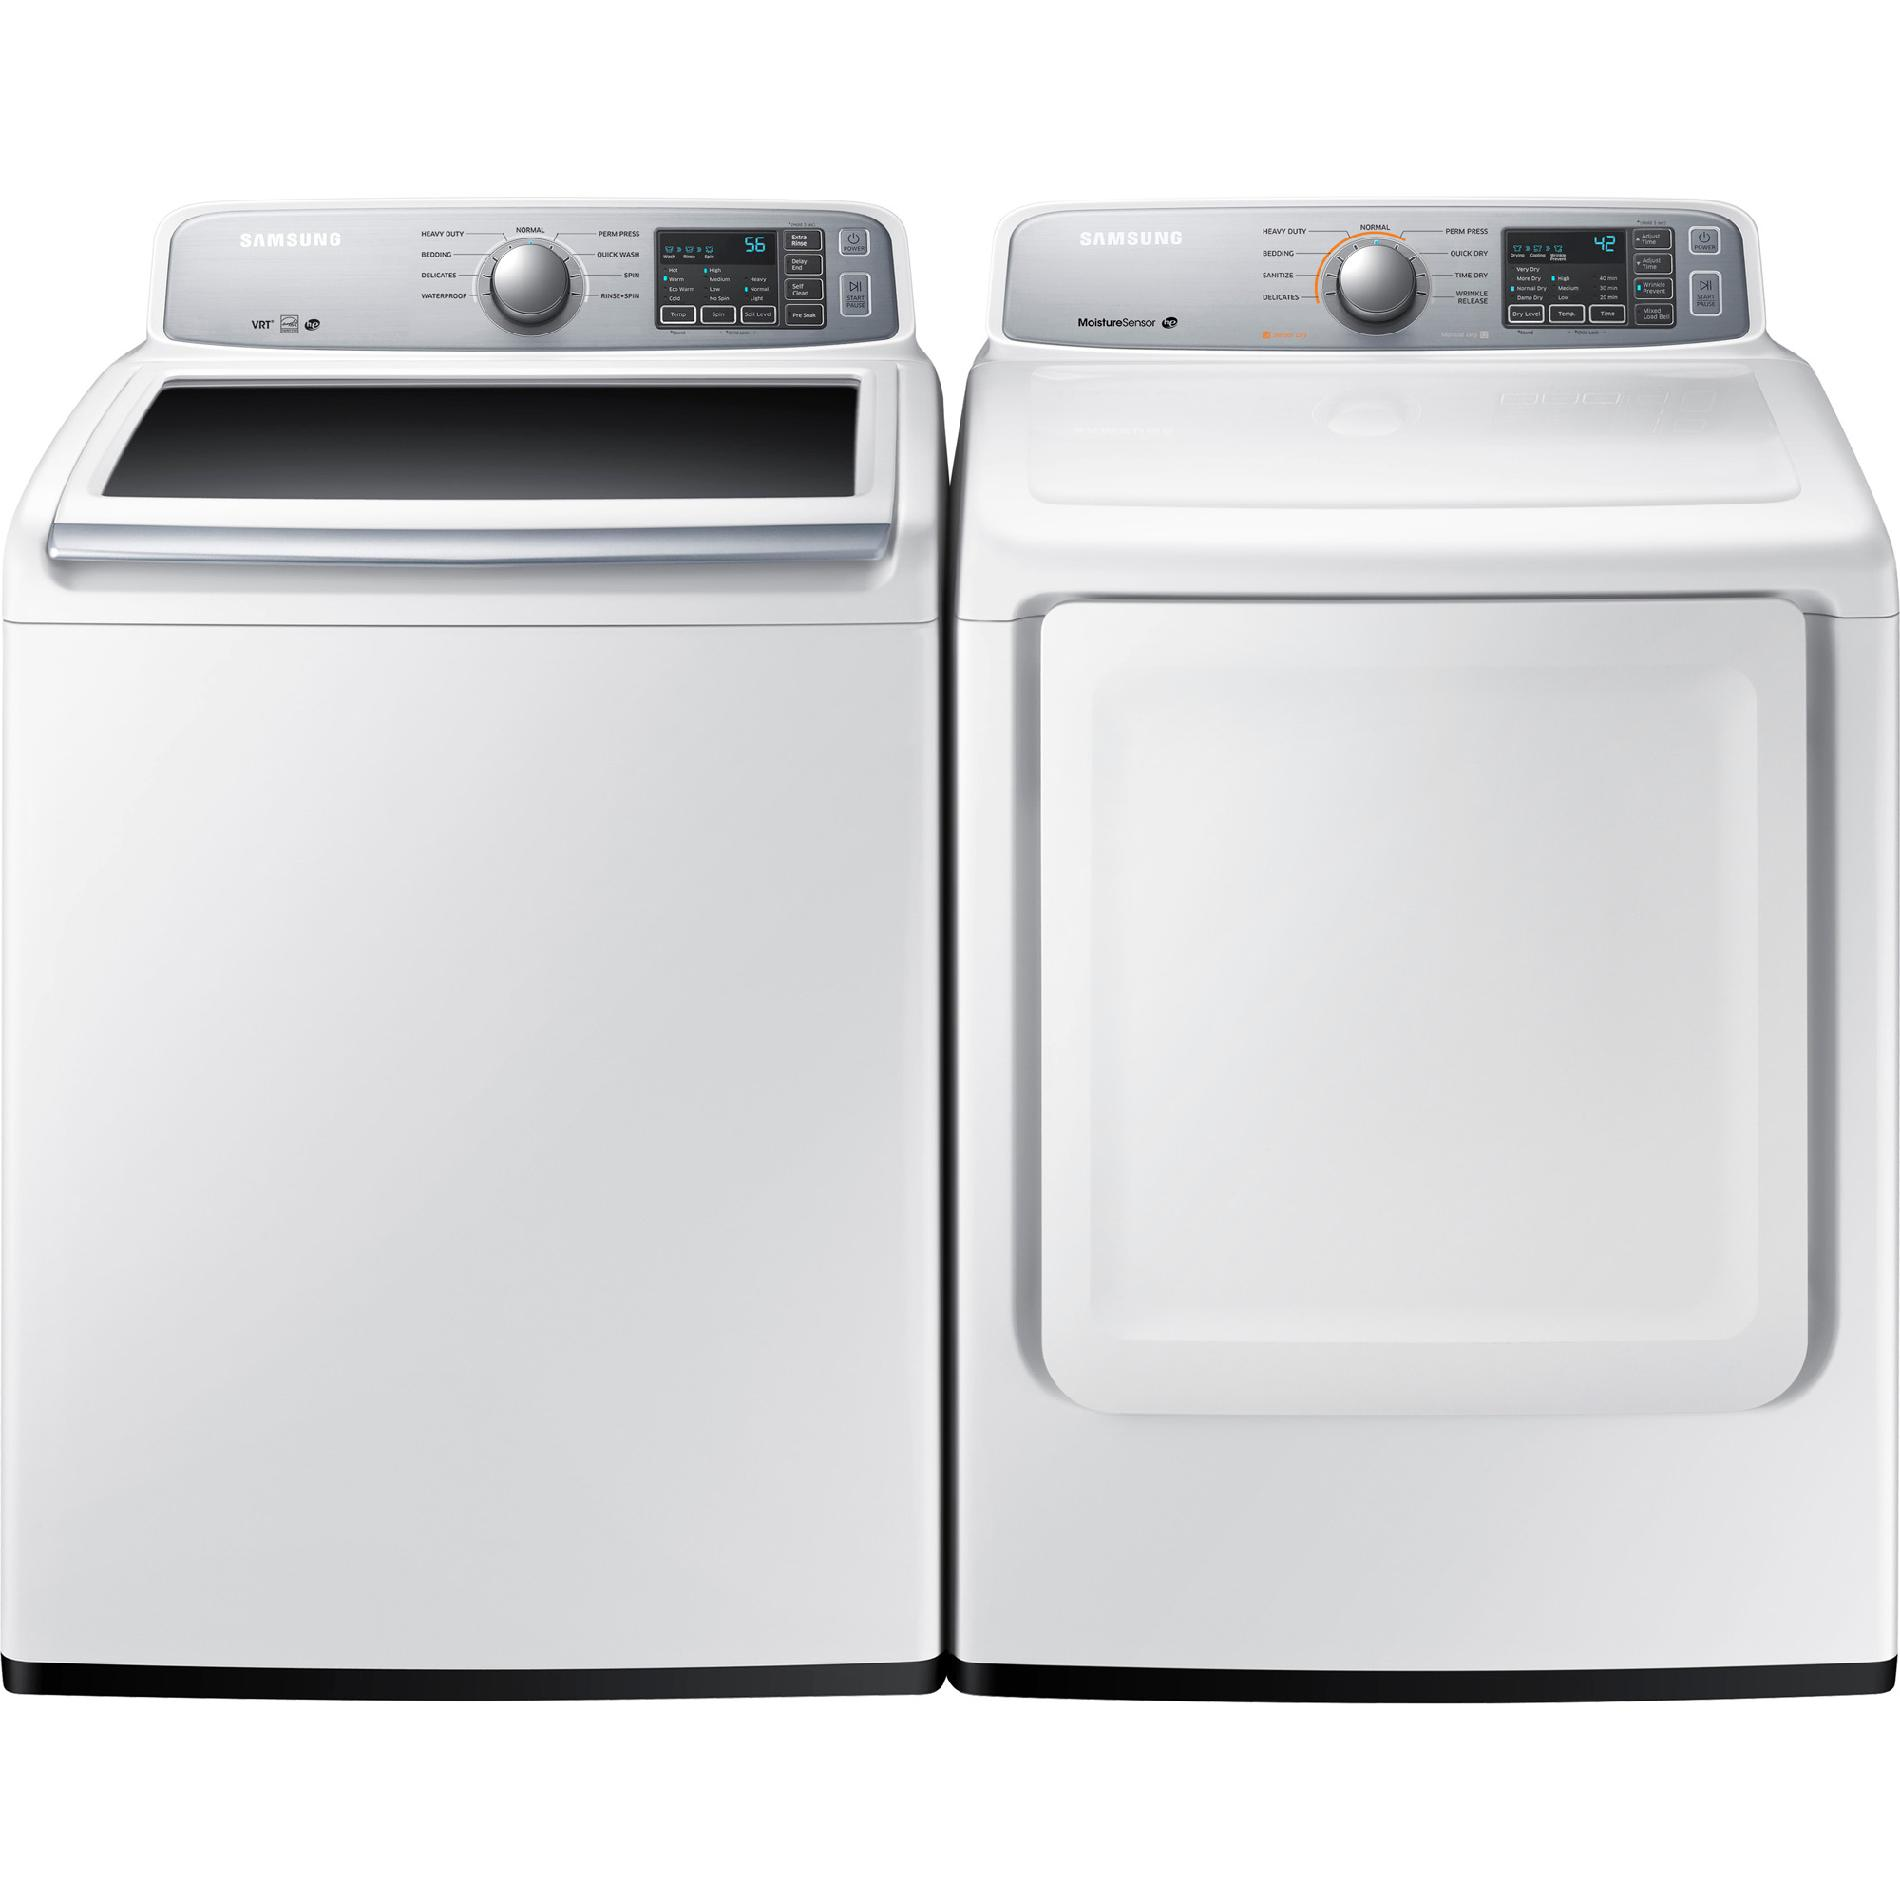 Samsung DV45H7000EW 7.4 cu. ft. Electric Dryer-White